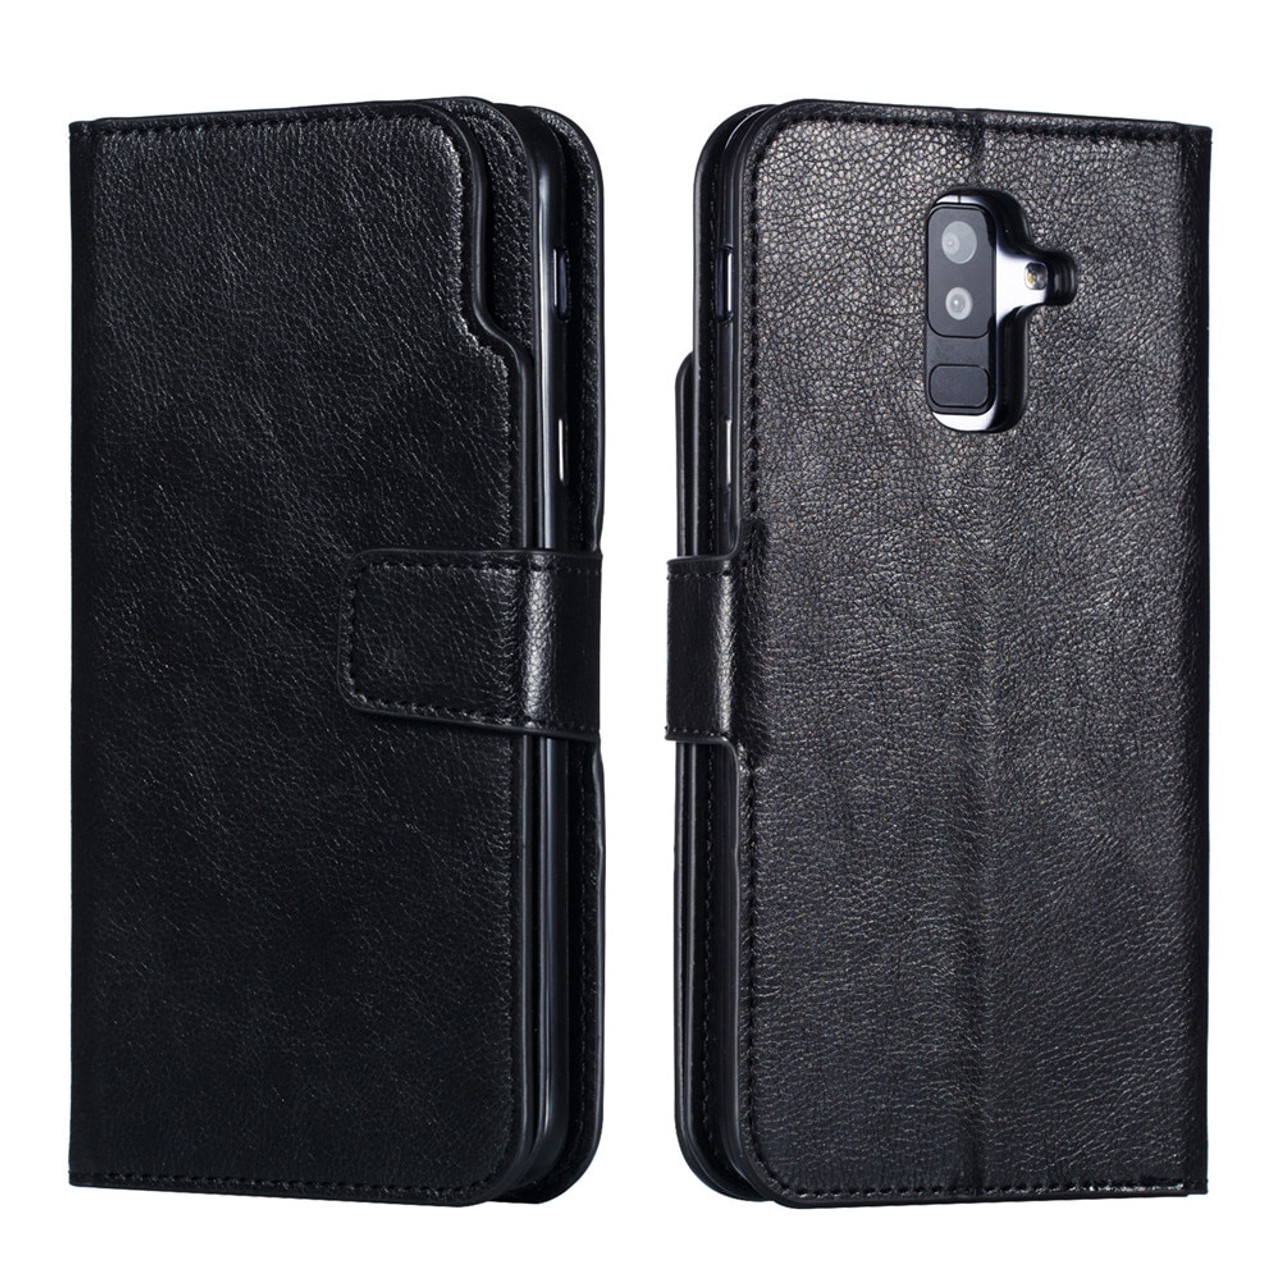 best service f77ee 19fa7 Leather case For Samsung Galaxy A8 A6 Plus A7 2018 Case Cover Wallet Magnet  Flip Phone cases For Samsung Galaxy J4 J6 Plus Case